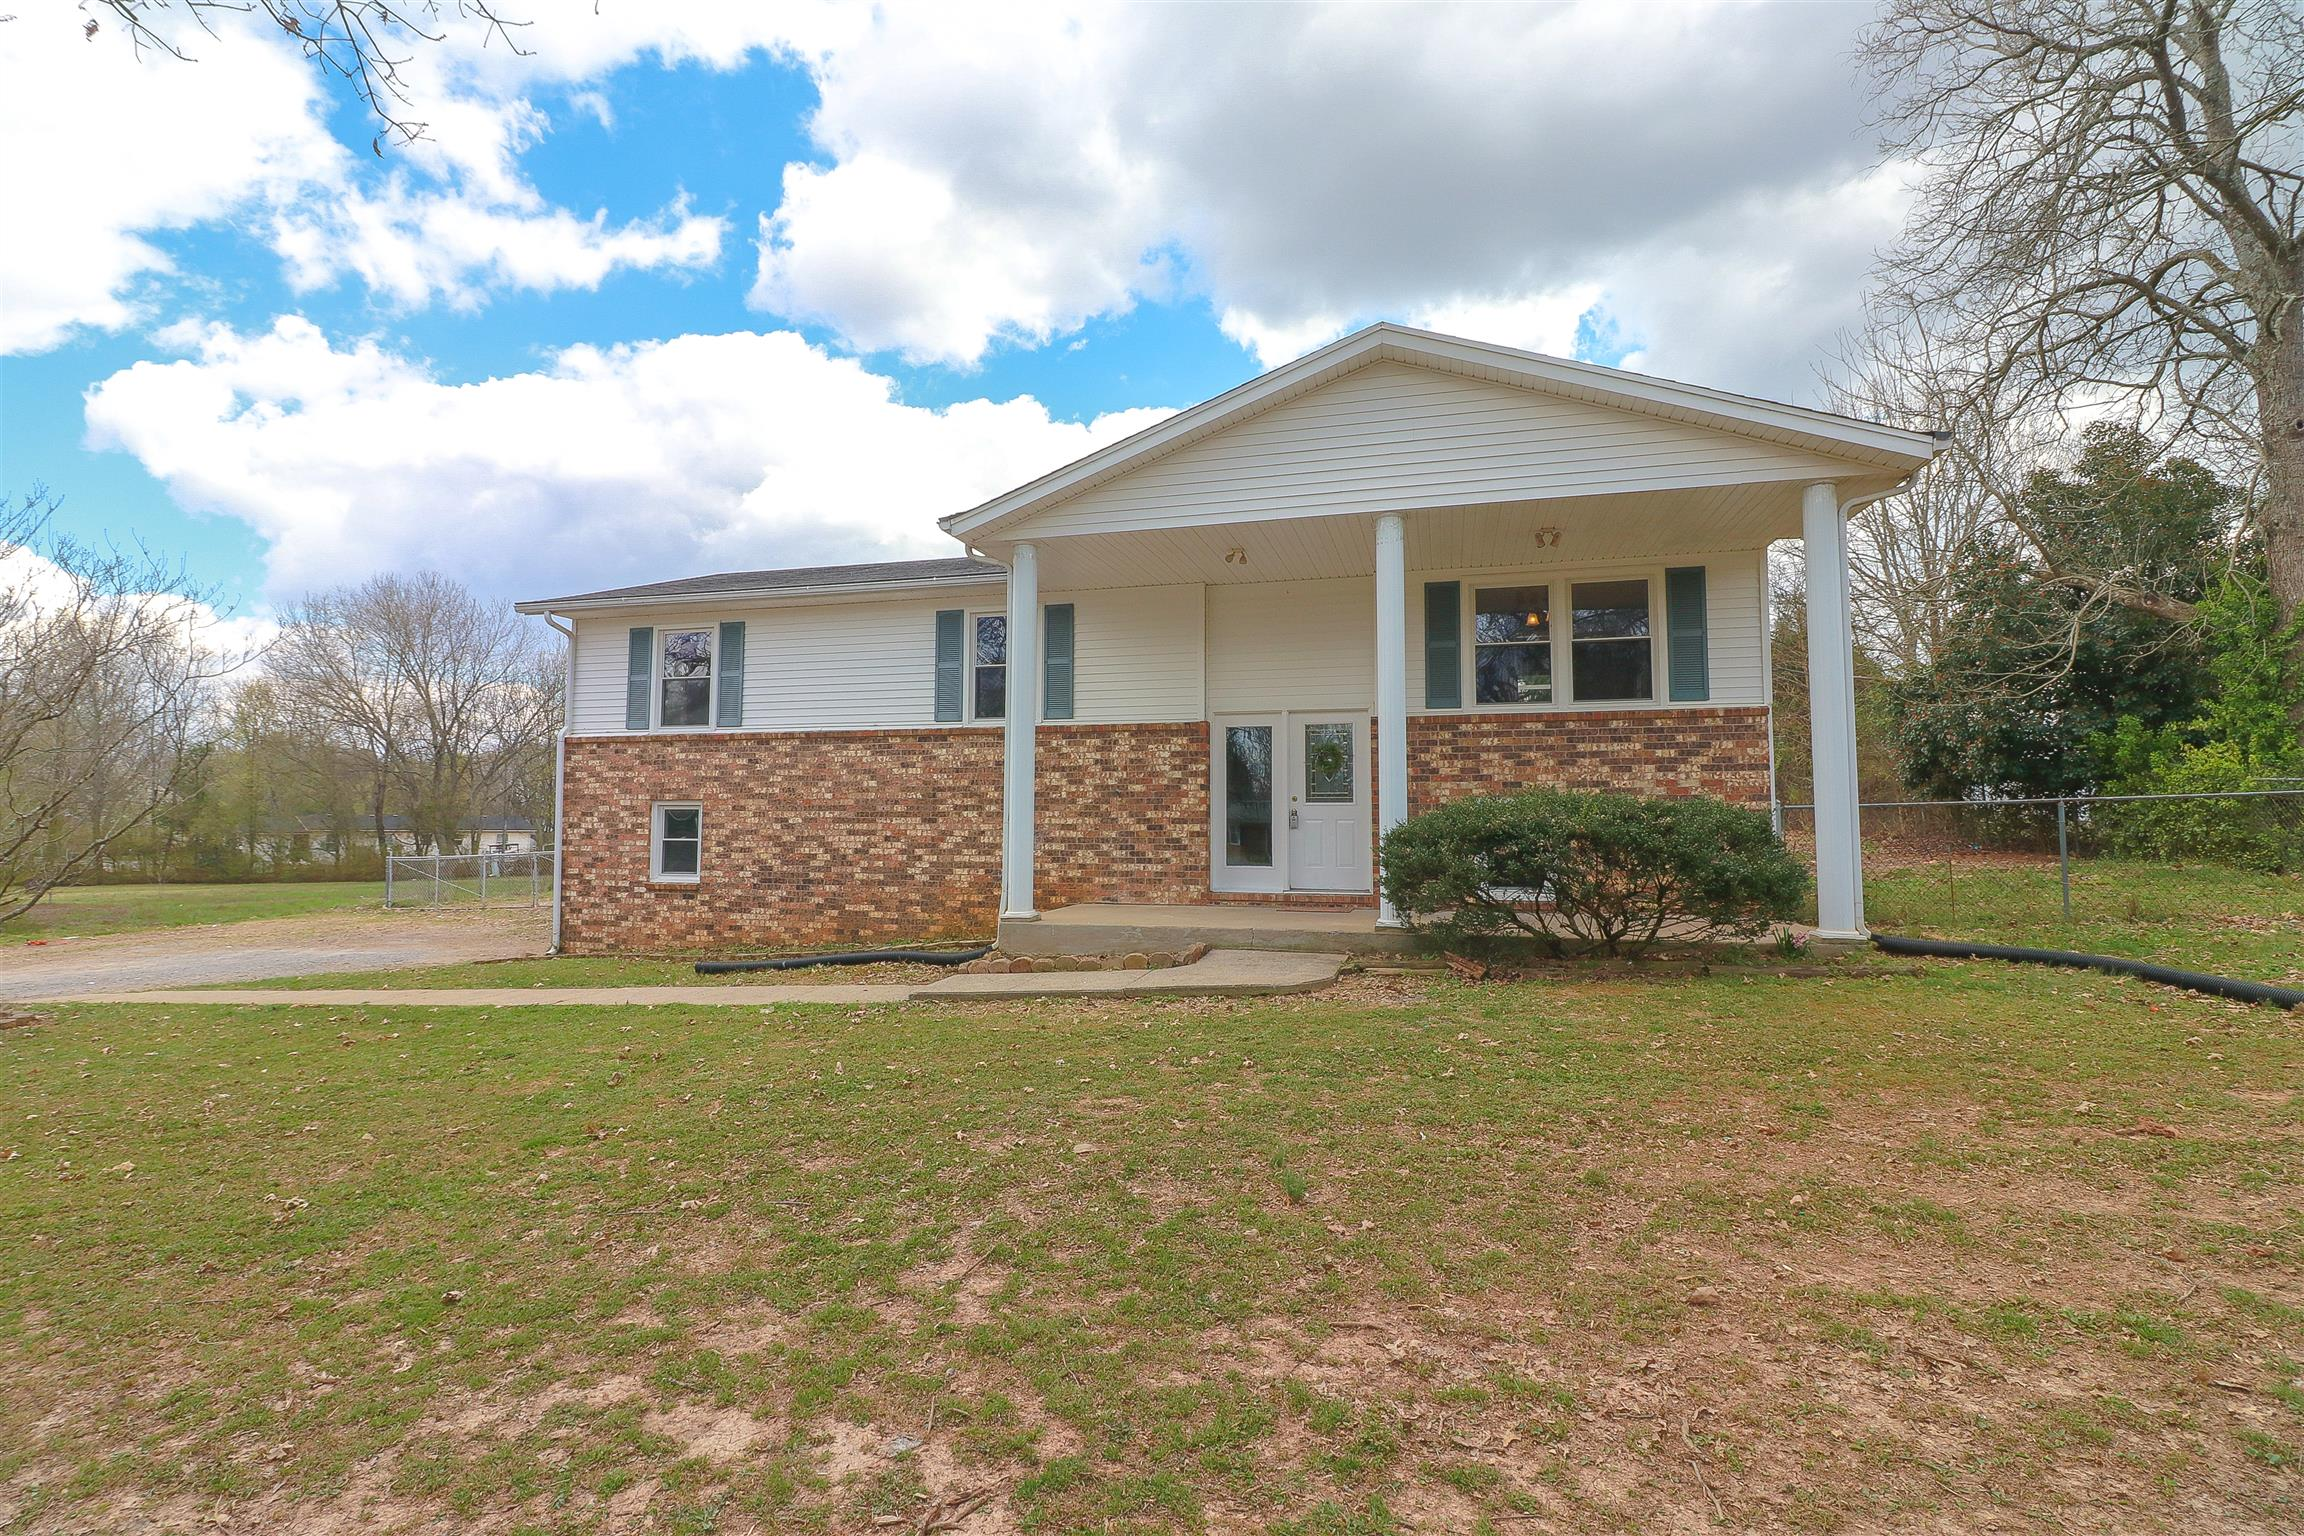 231 Joy Ave, Rockvale, TN 37153 - Rockvale, TN real estate listing